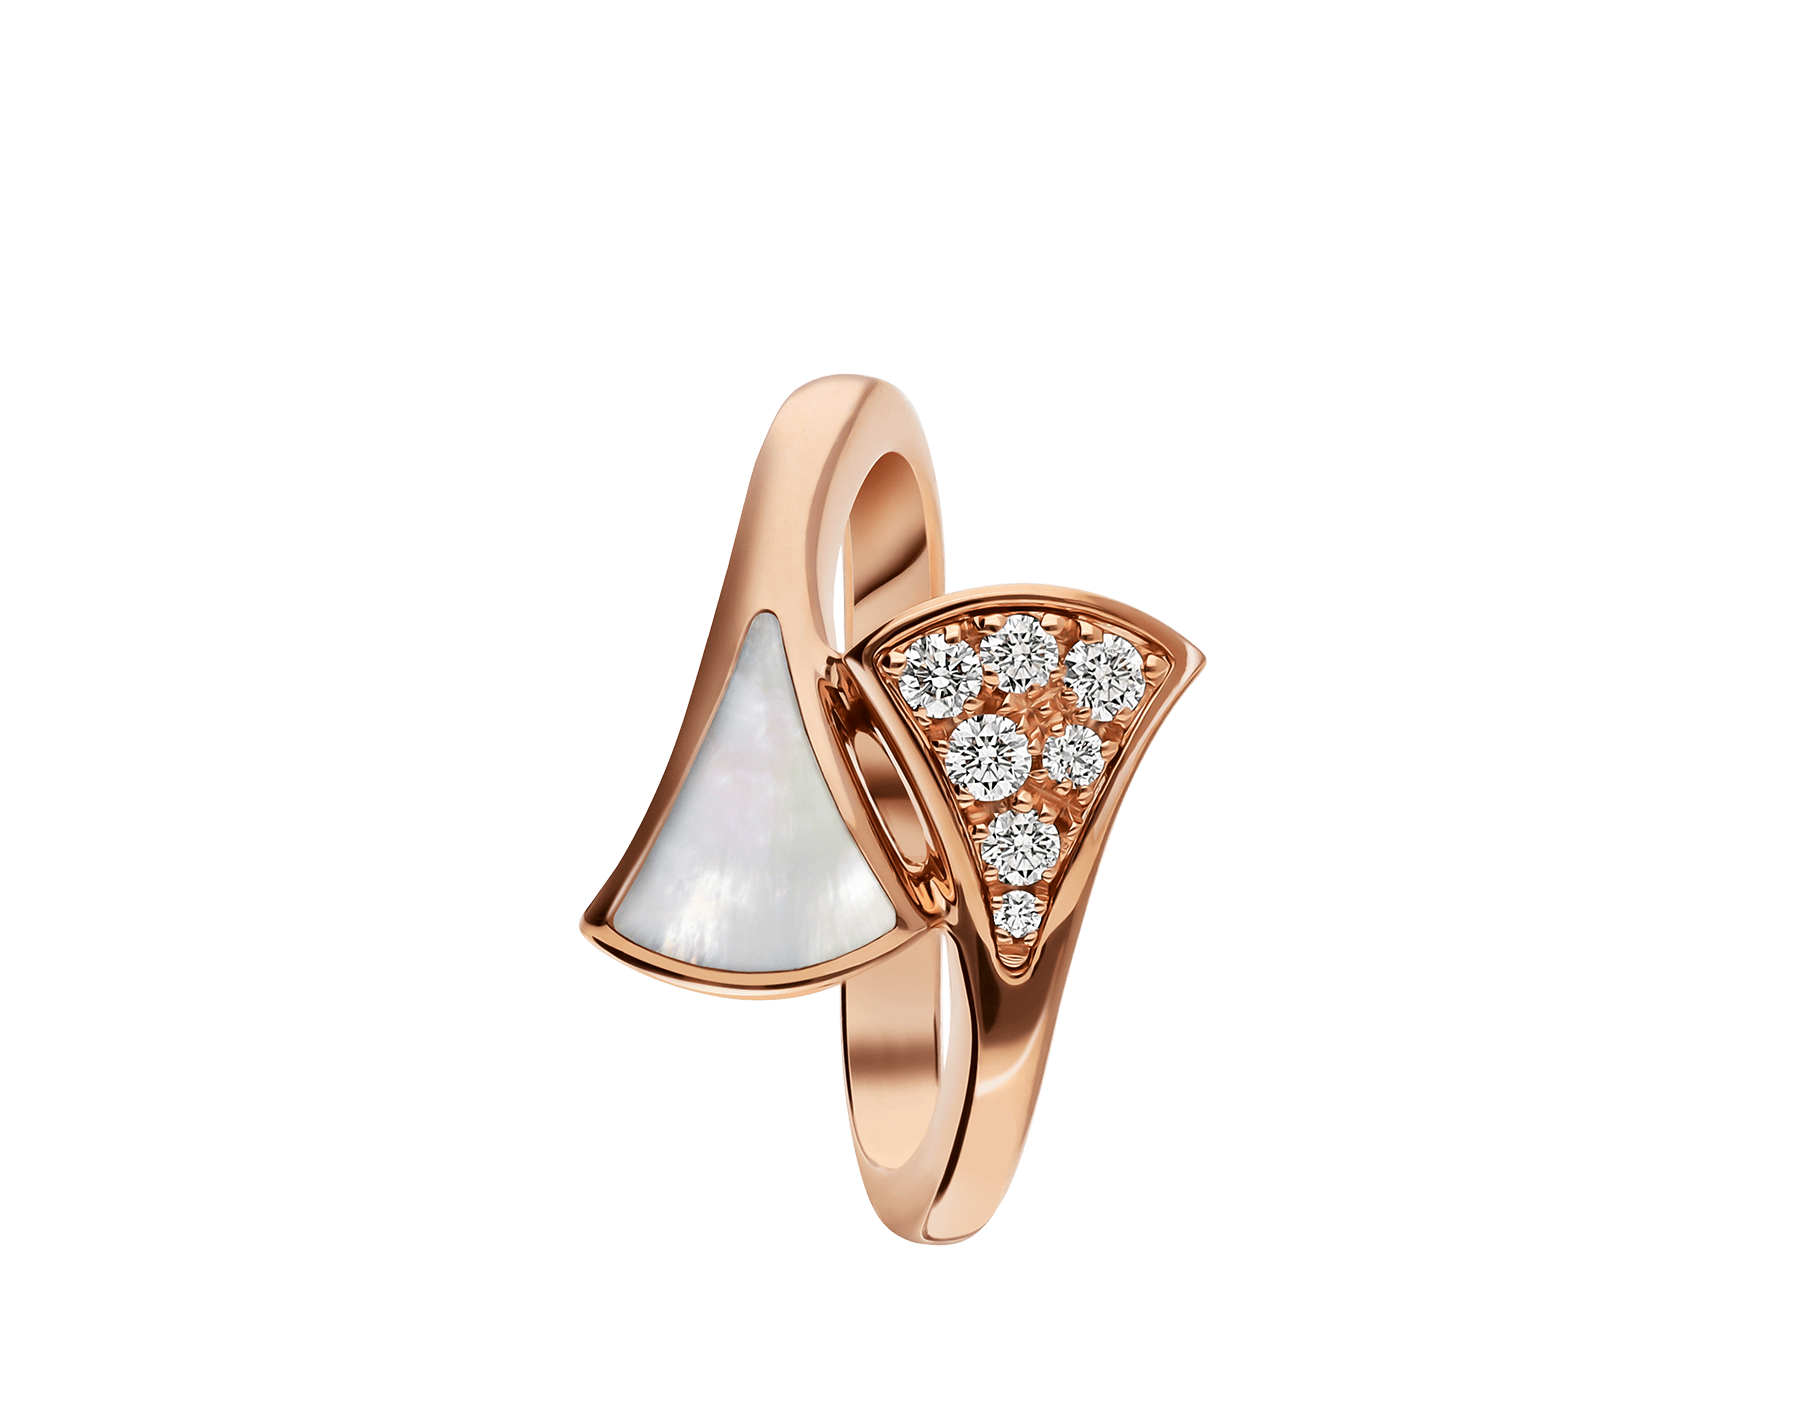 DIVAS' DREAM small contraire ring in 18 kt rose gold, set with mother of pearl and pavé diamonds. AN858003 image 2